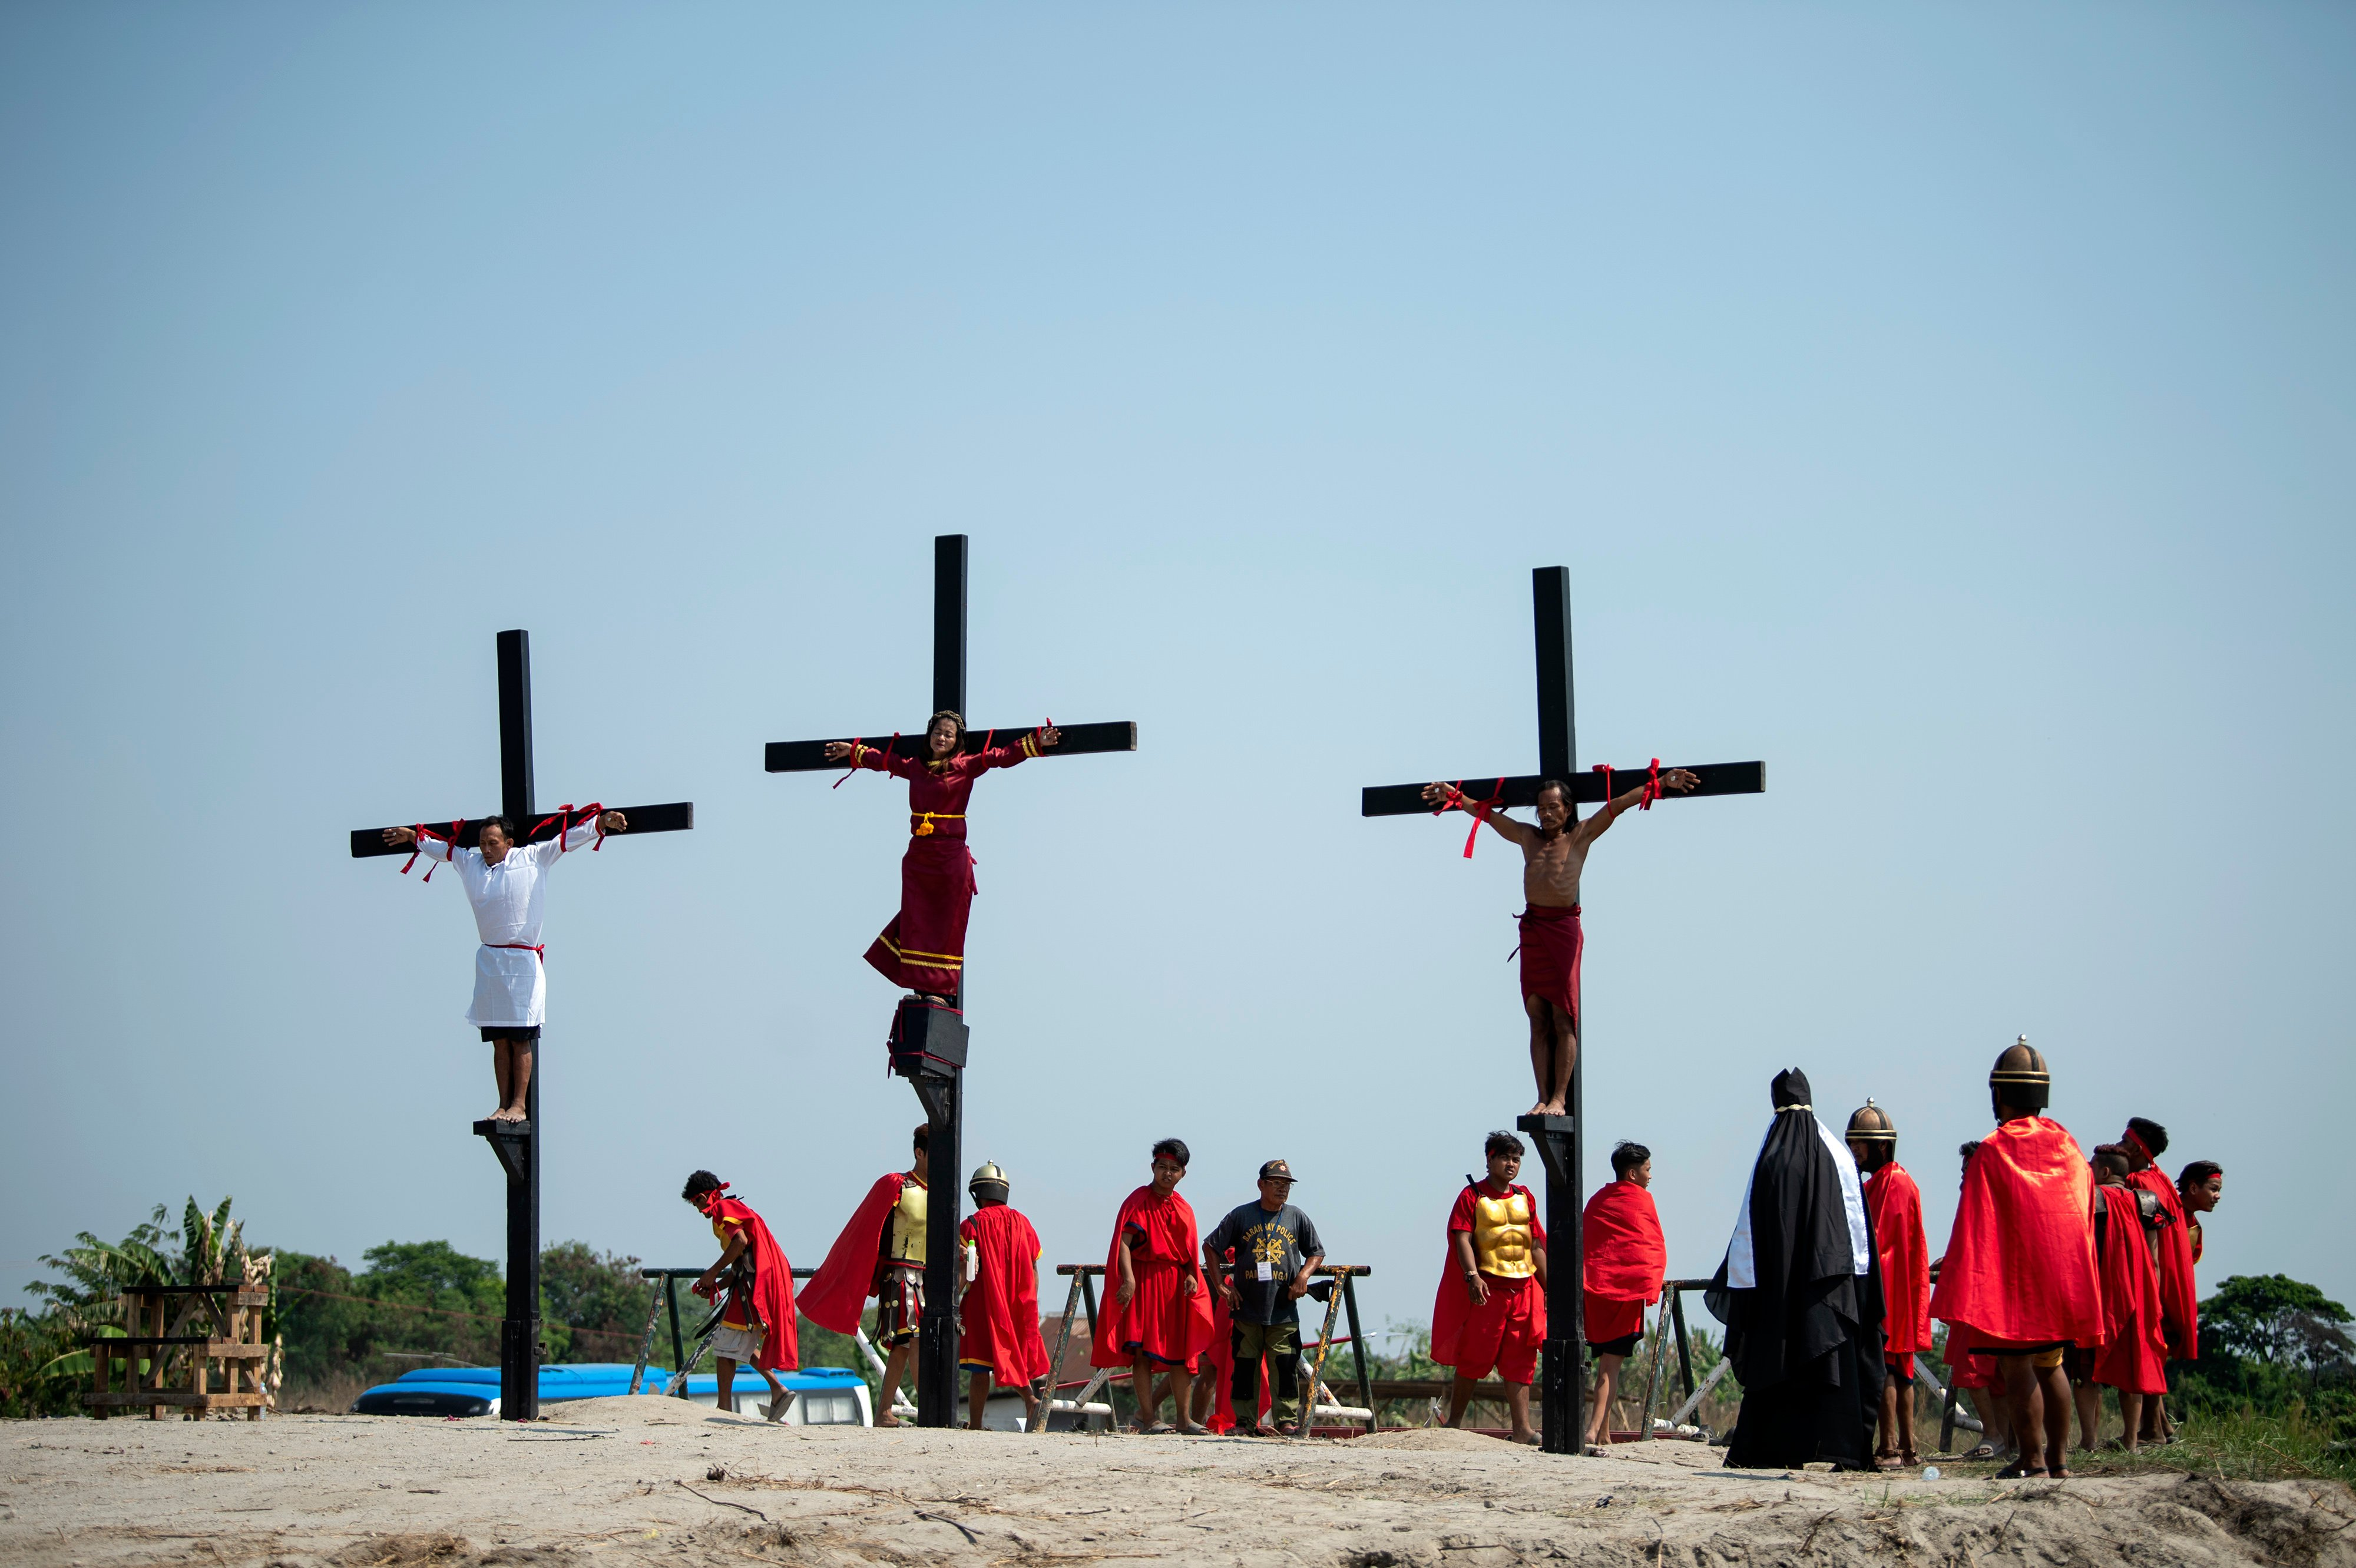 Philippine Christian devotees are nailed to crosses during a reenactment of the Crucifixion of Christ during Good Friday ahead of Easter in the village of Cutud near San Fernando on April 19, 2019. (NOEL CELIS/AFP/Getty Images)